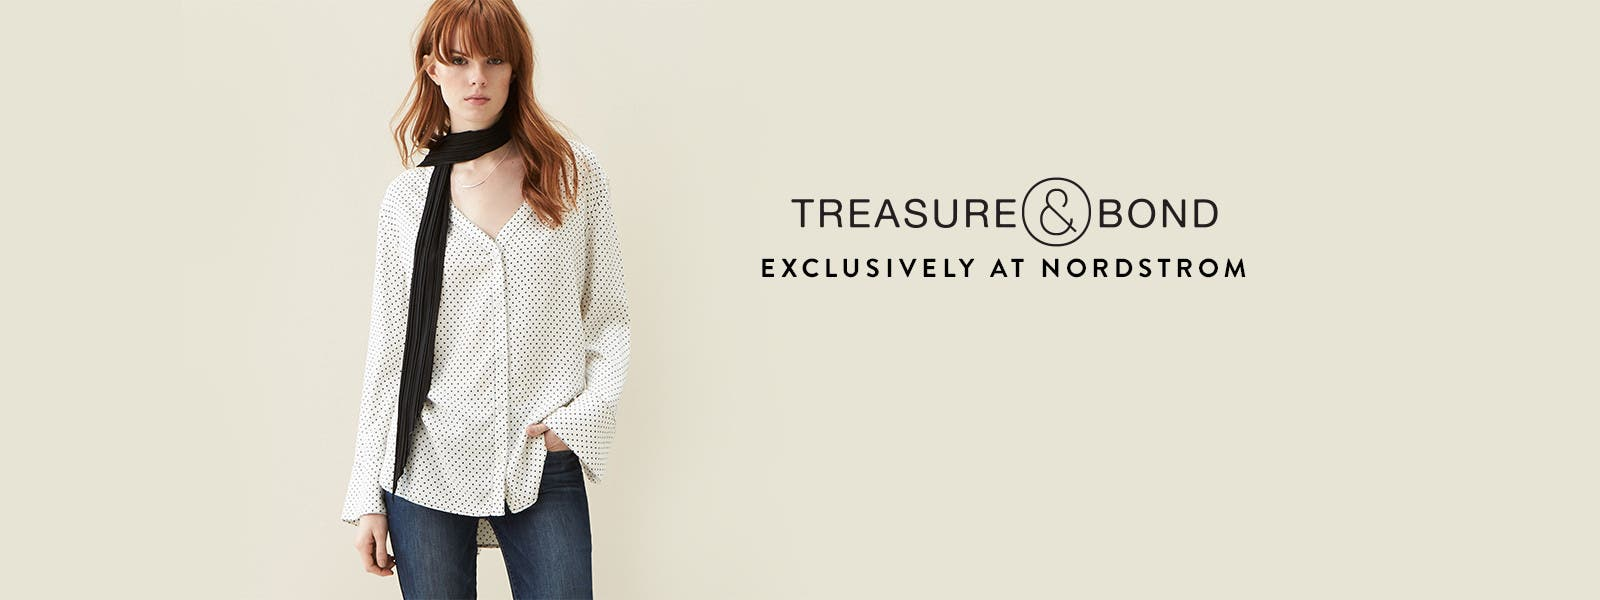 Treasure&Bond, exclusively at Nordstrom.